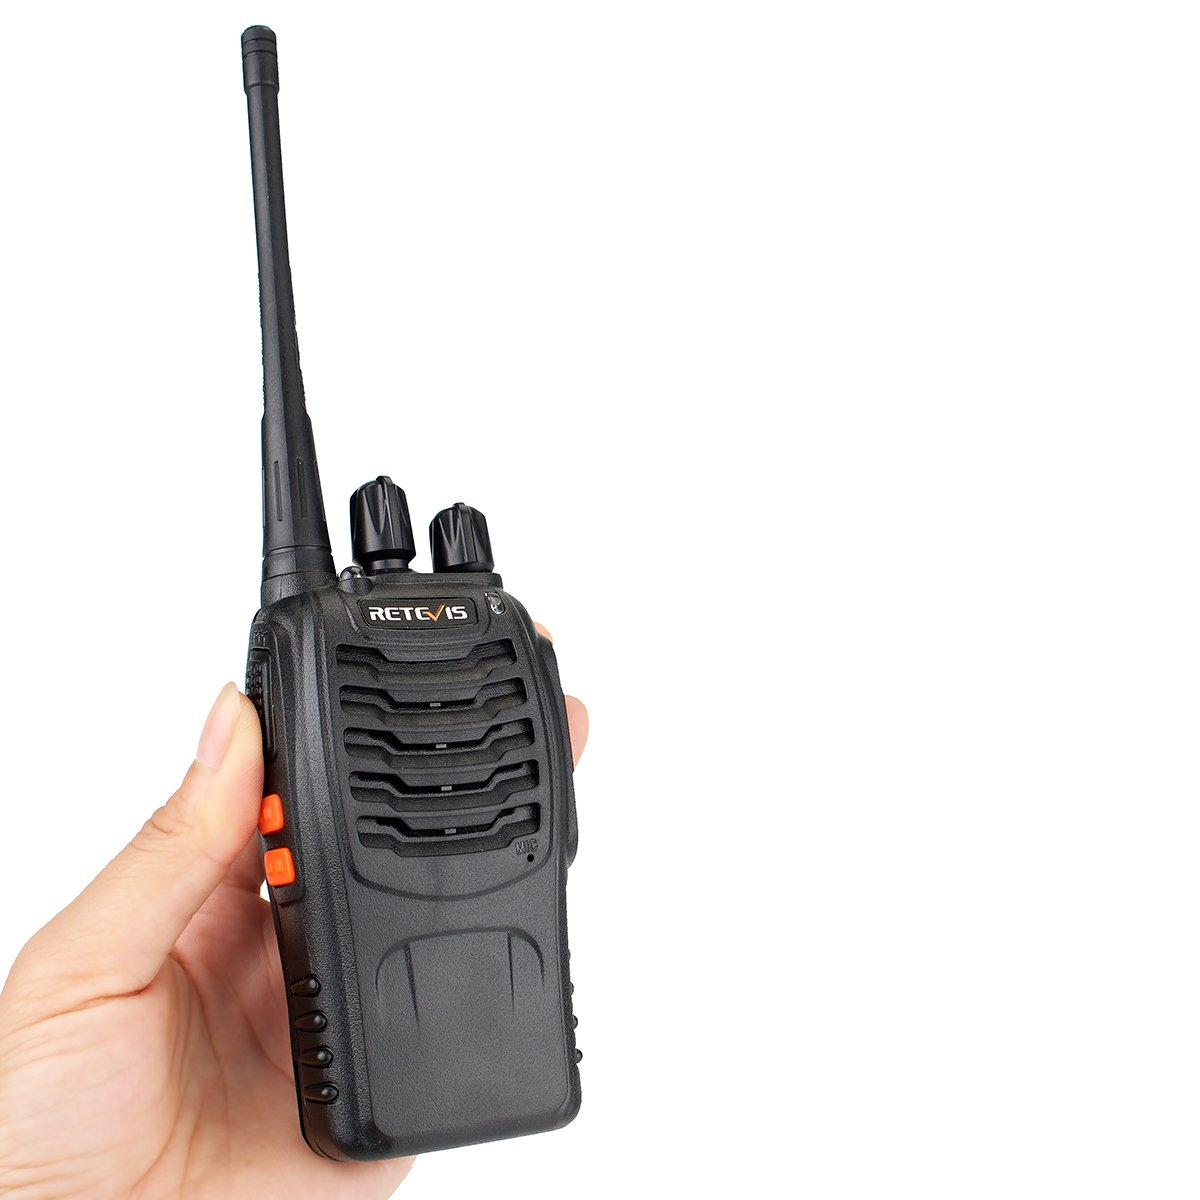 Retevis H-777 Two Way Radio UHF 400-470MHz Signal Frequency Single Band 16 CH Walkie Talkies with Original Earpiece (10 Pack) by Retevis (Image #8)